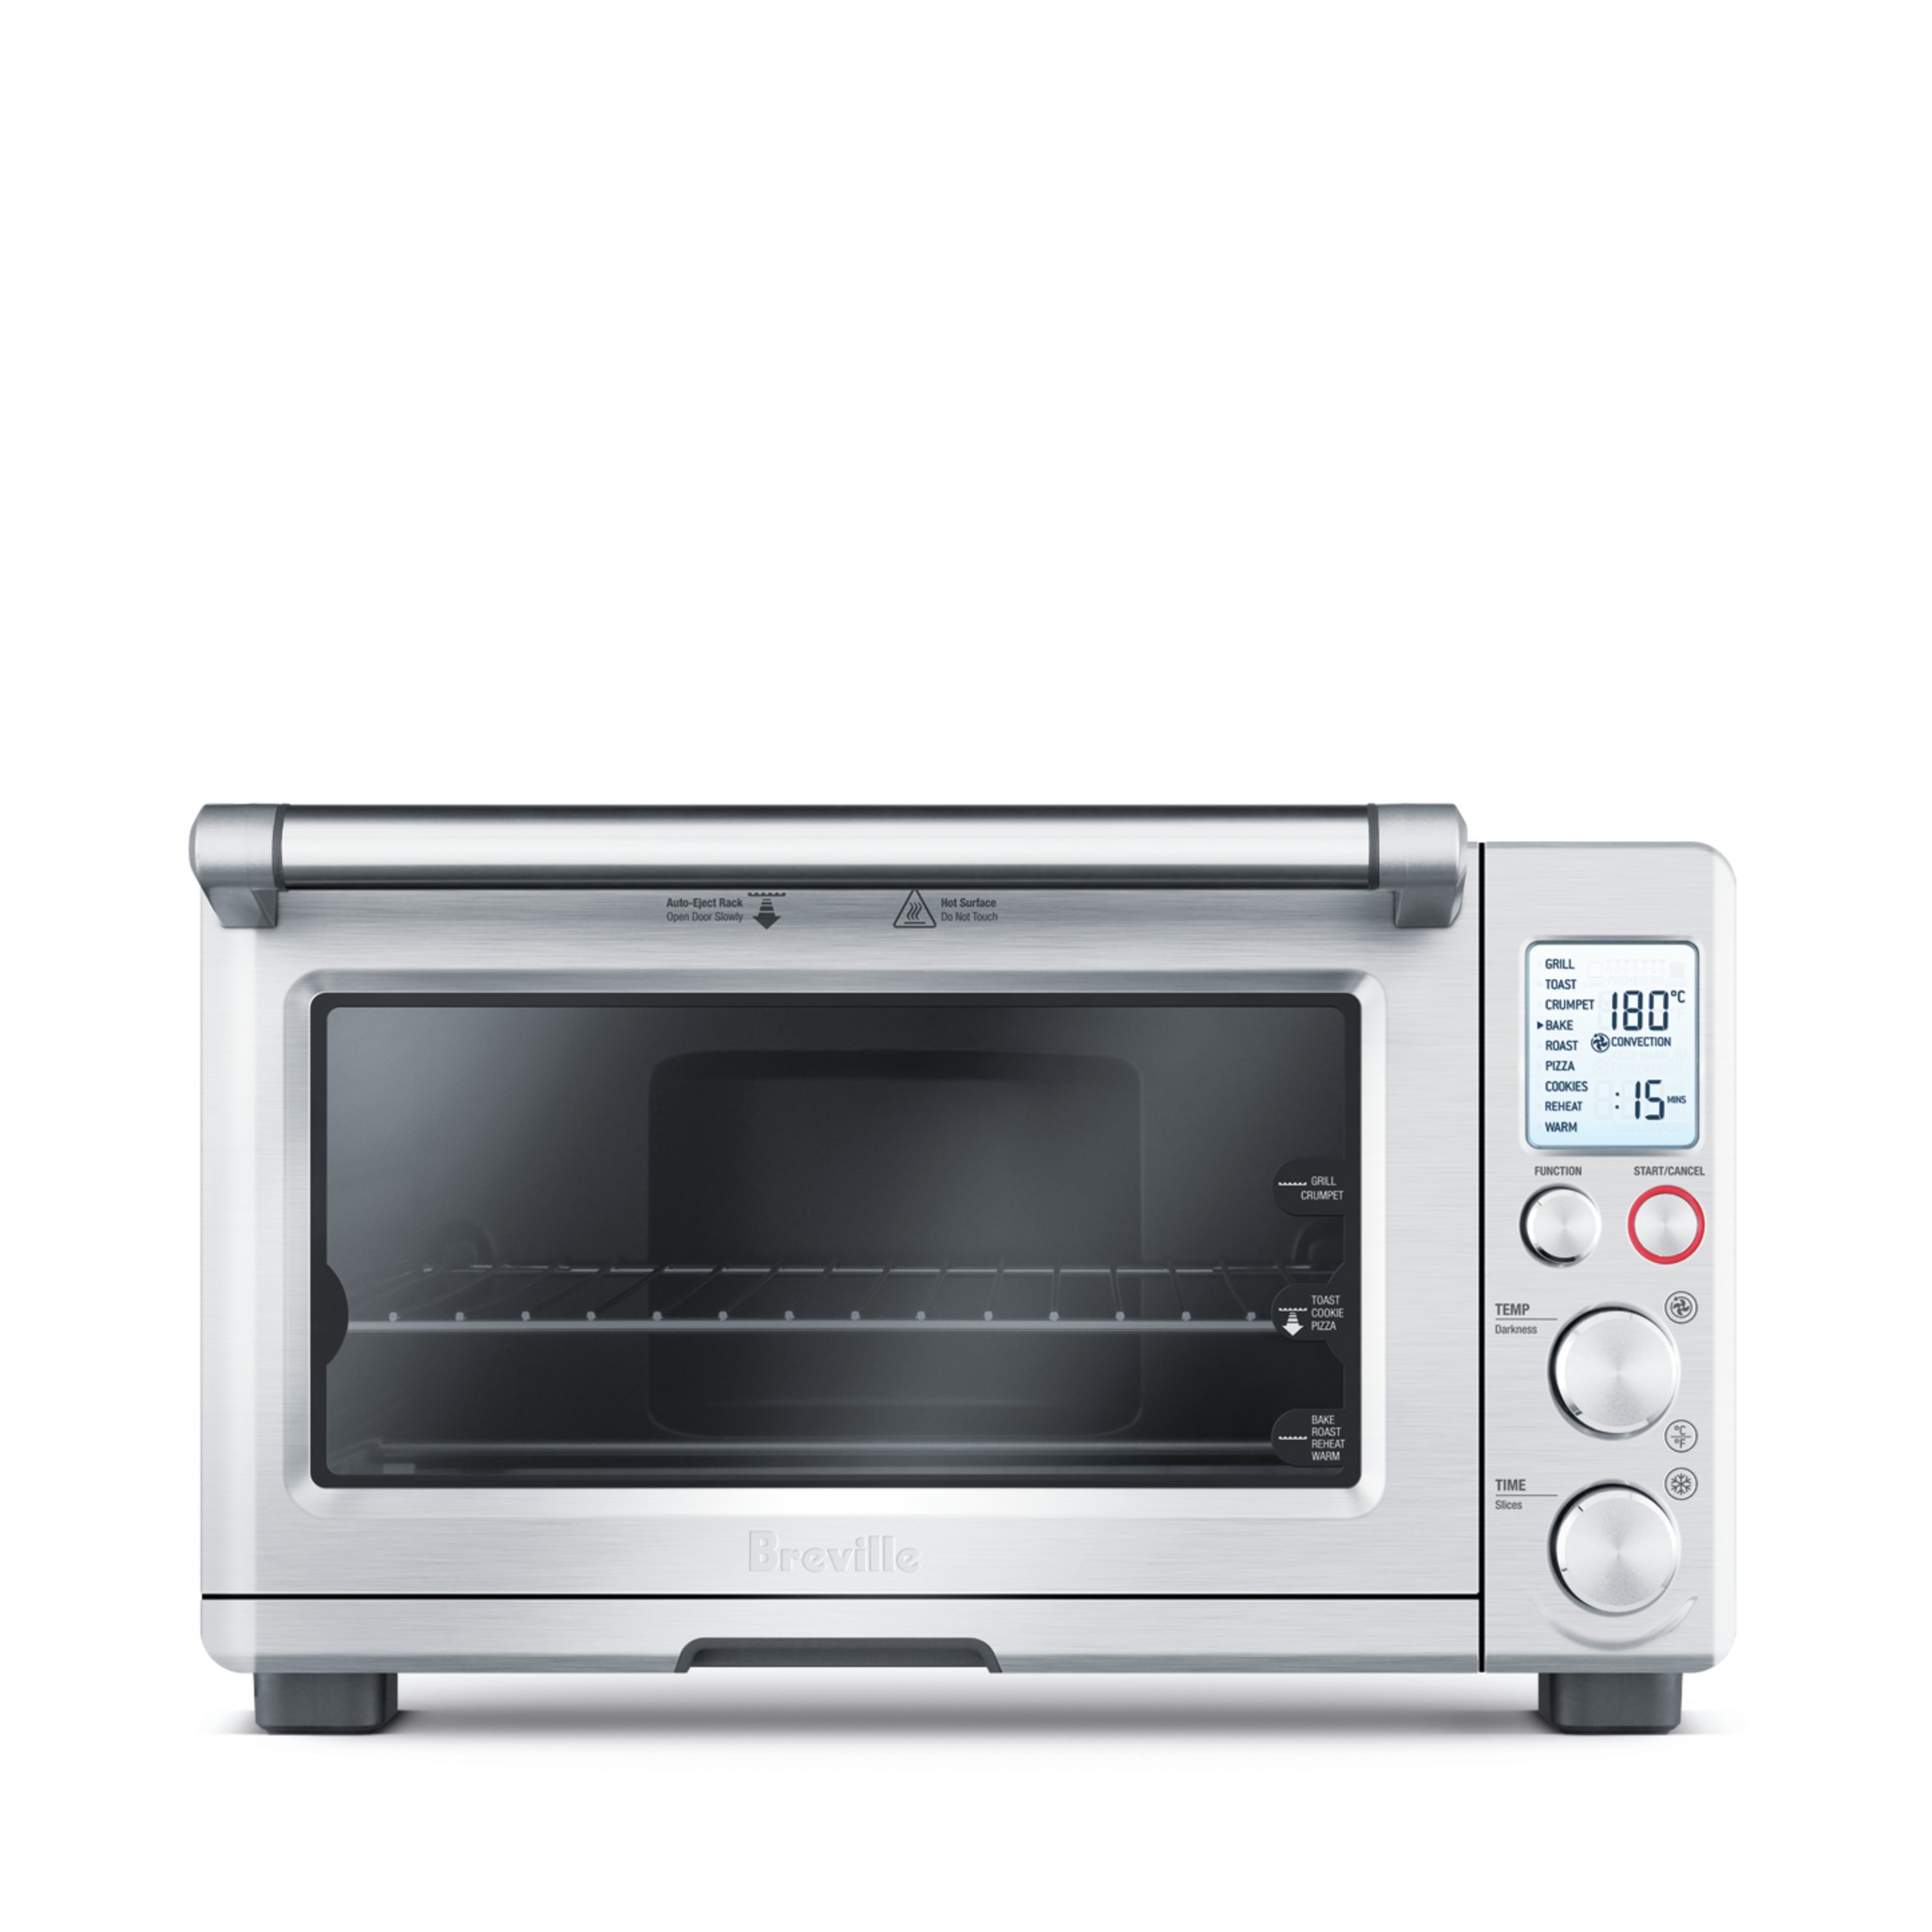 from the do baking oven convection all toaster breville air trends frying digital to it smart home can